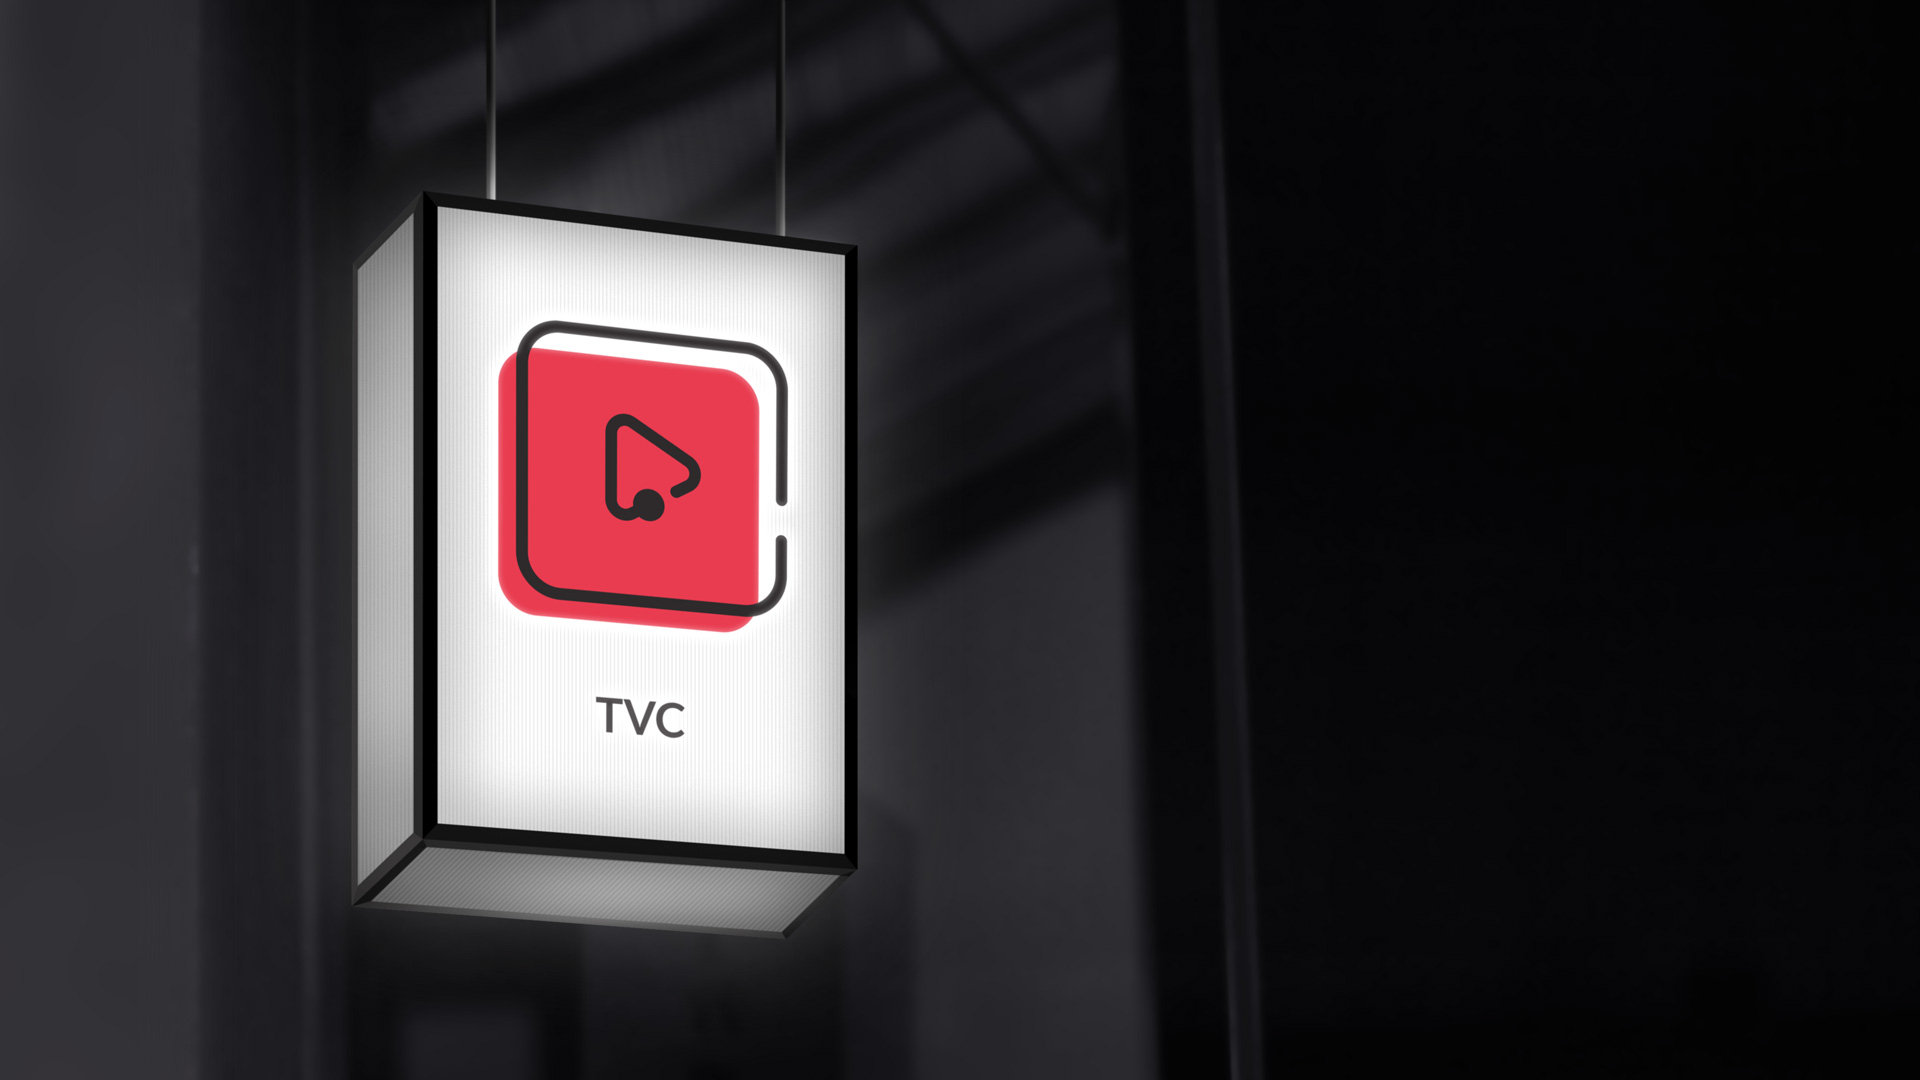 tvc-icon-design